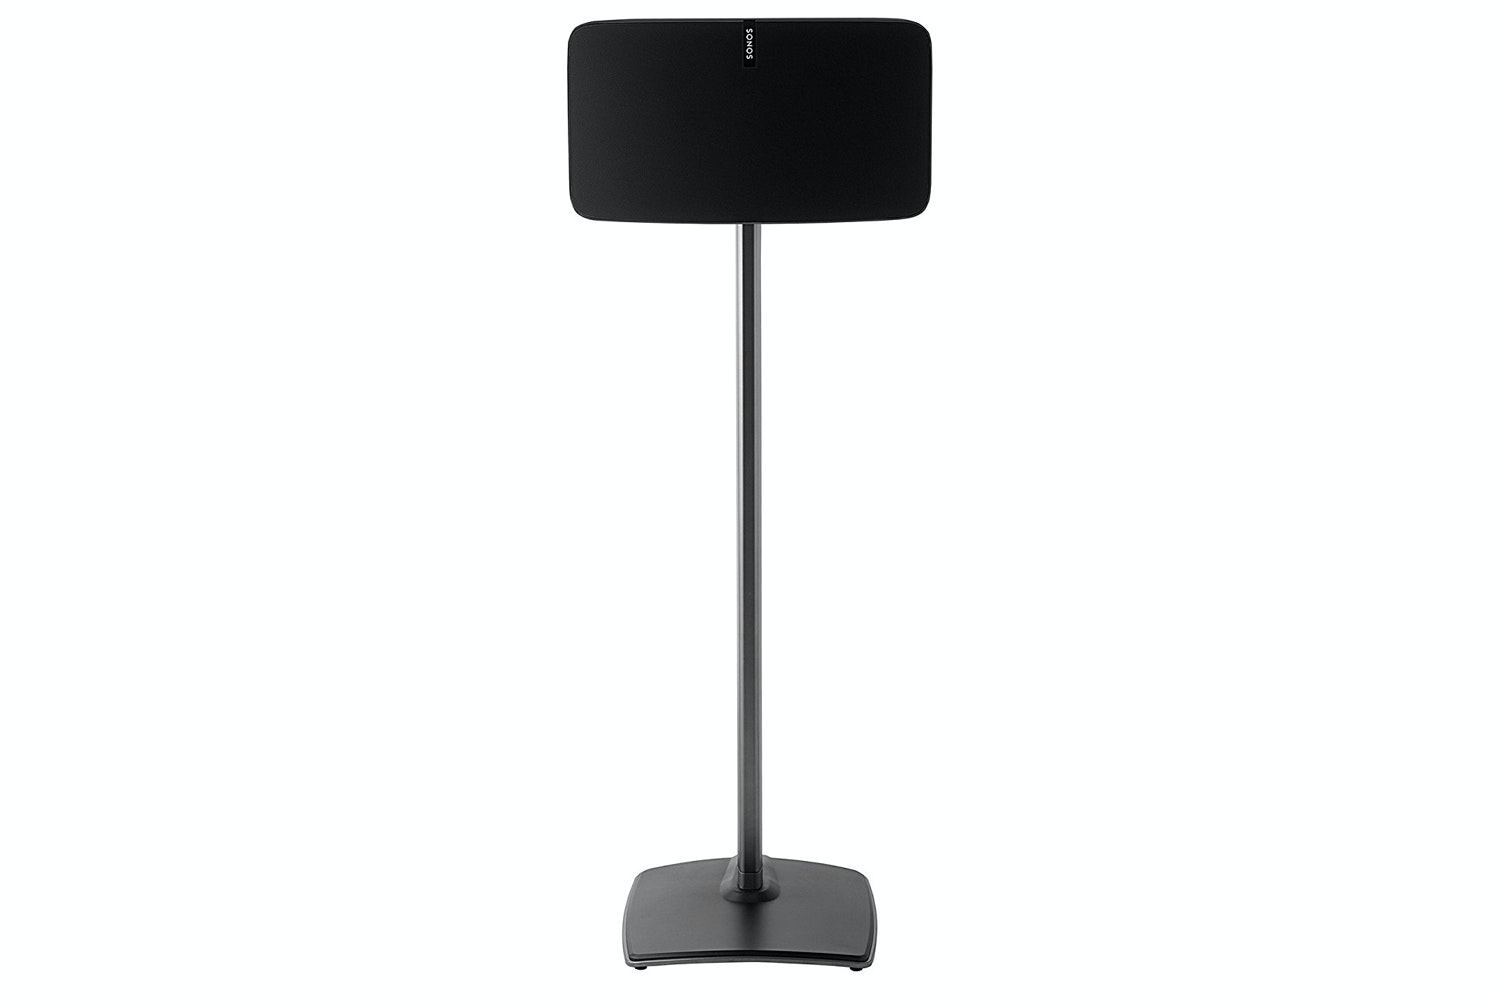 Wireless Speaker Stand designed for Sonos Play:5